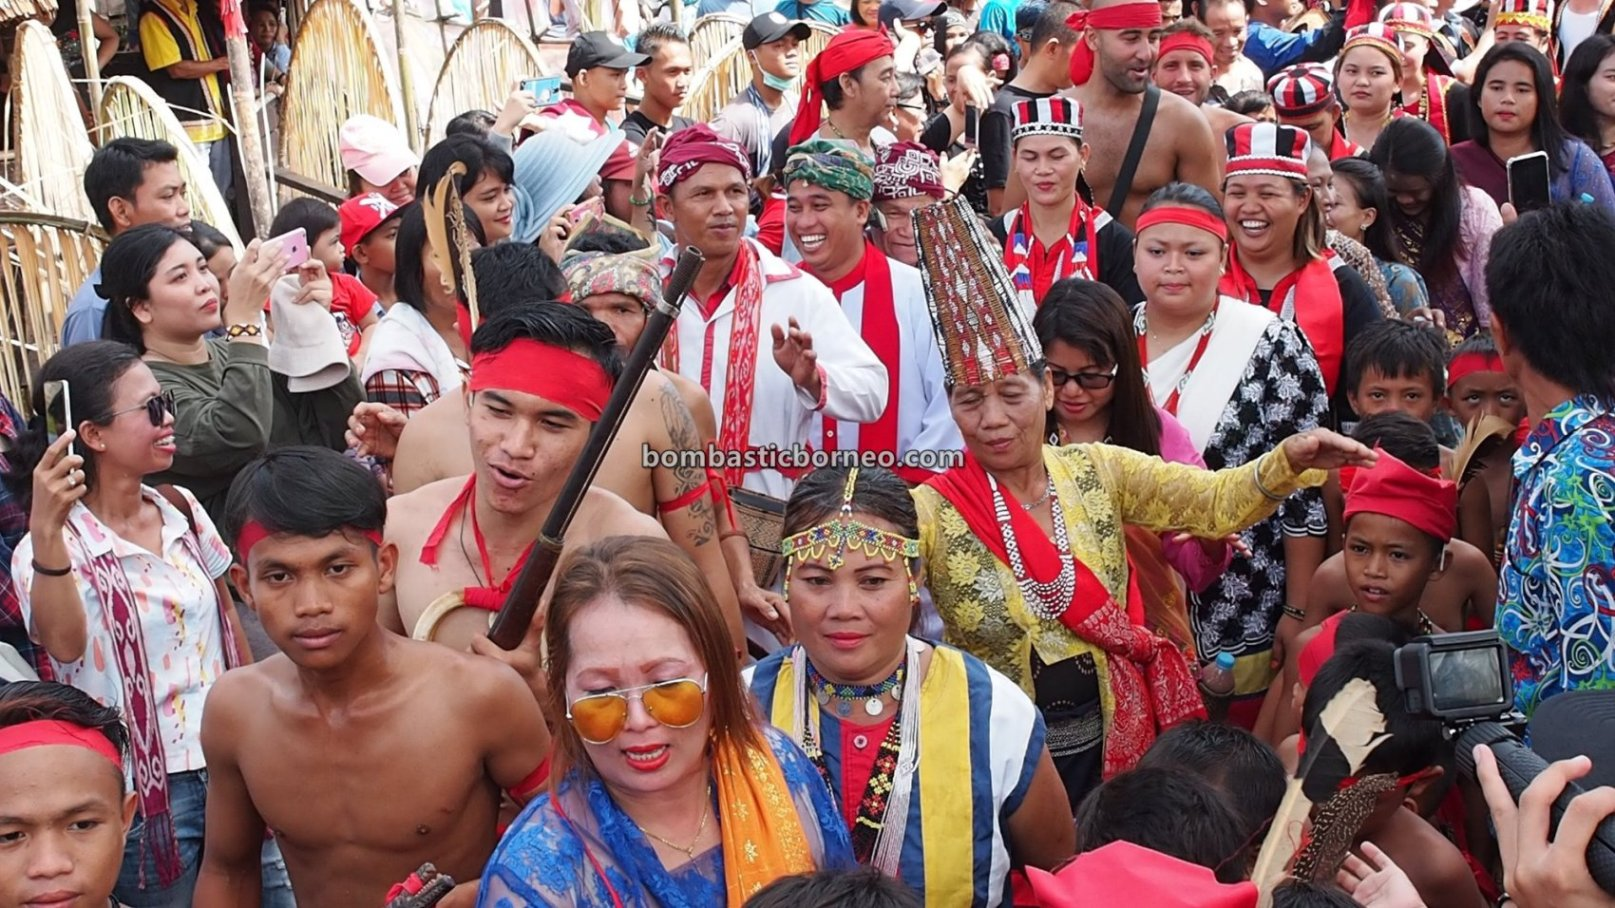 Harvest Festival, traditional, Bengkayang, Kalimantan Barat, Siding, Indigenous, native, tribal, wisata budaya, Tourism, travel guide, Trans Border, Borneo, 印尼西加里曼丹, 原住民传统丰收节. 婆罗洲比达友部落